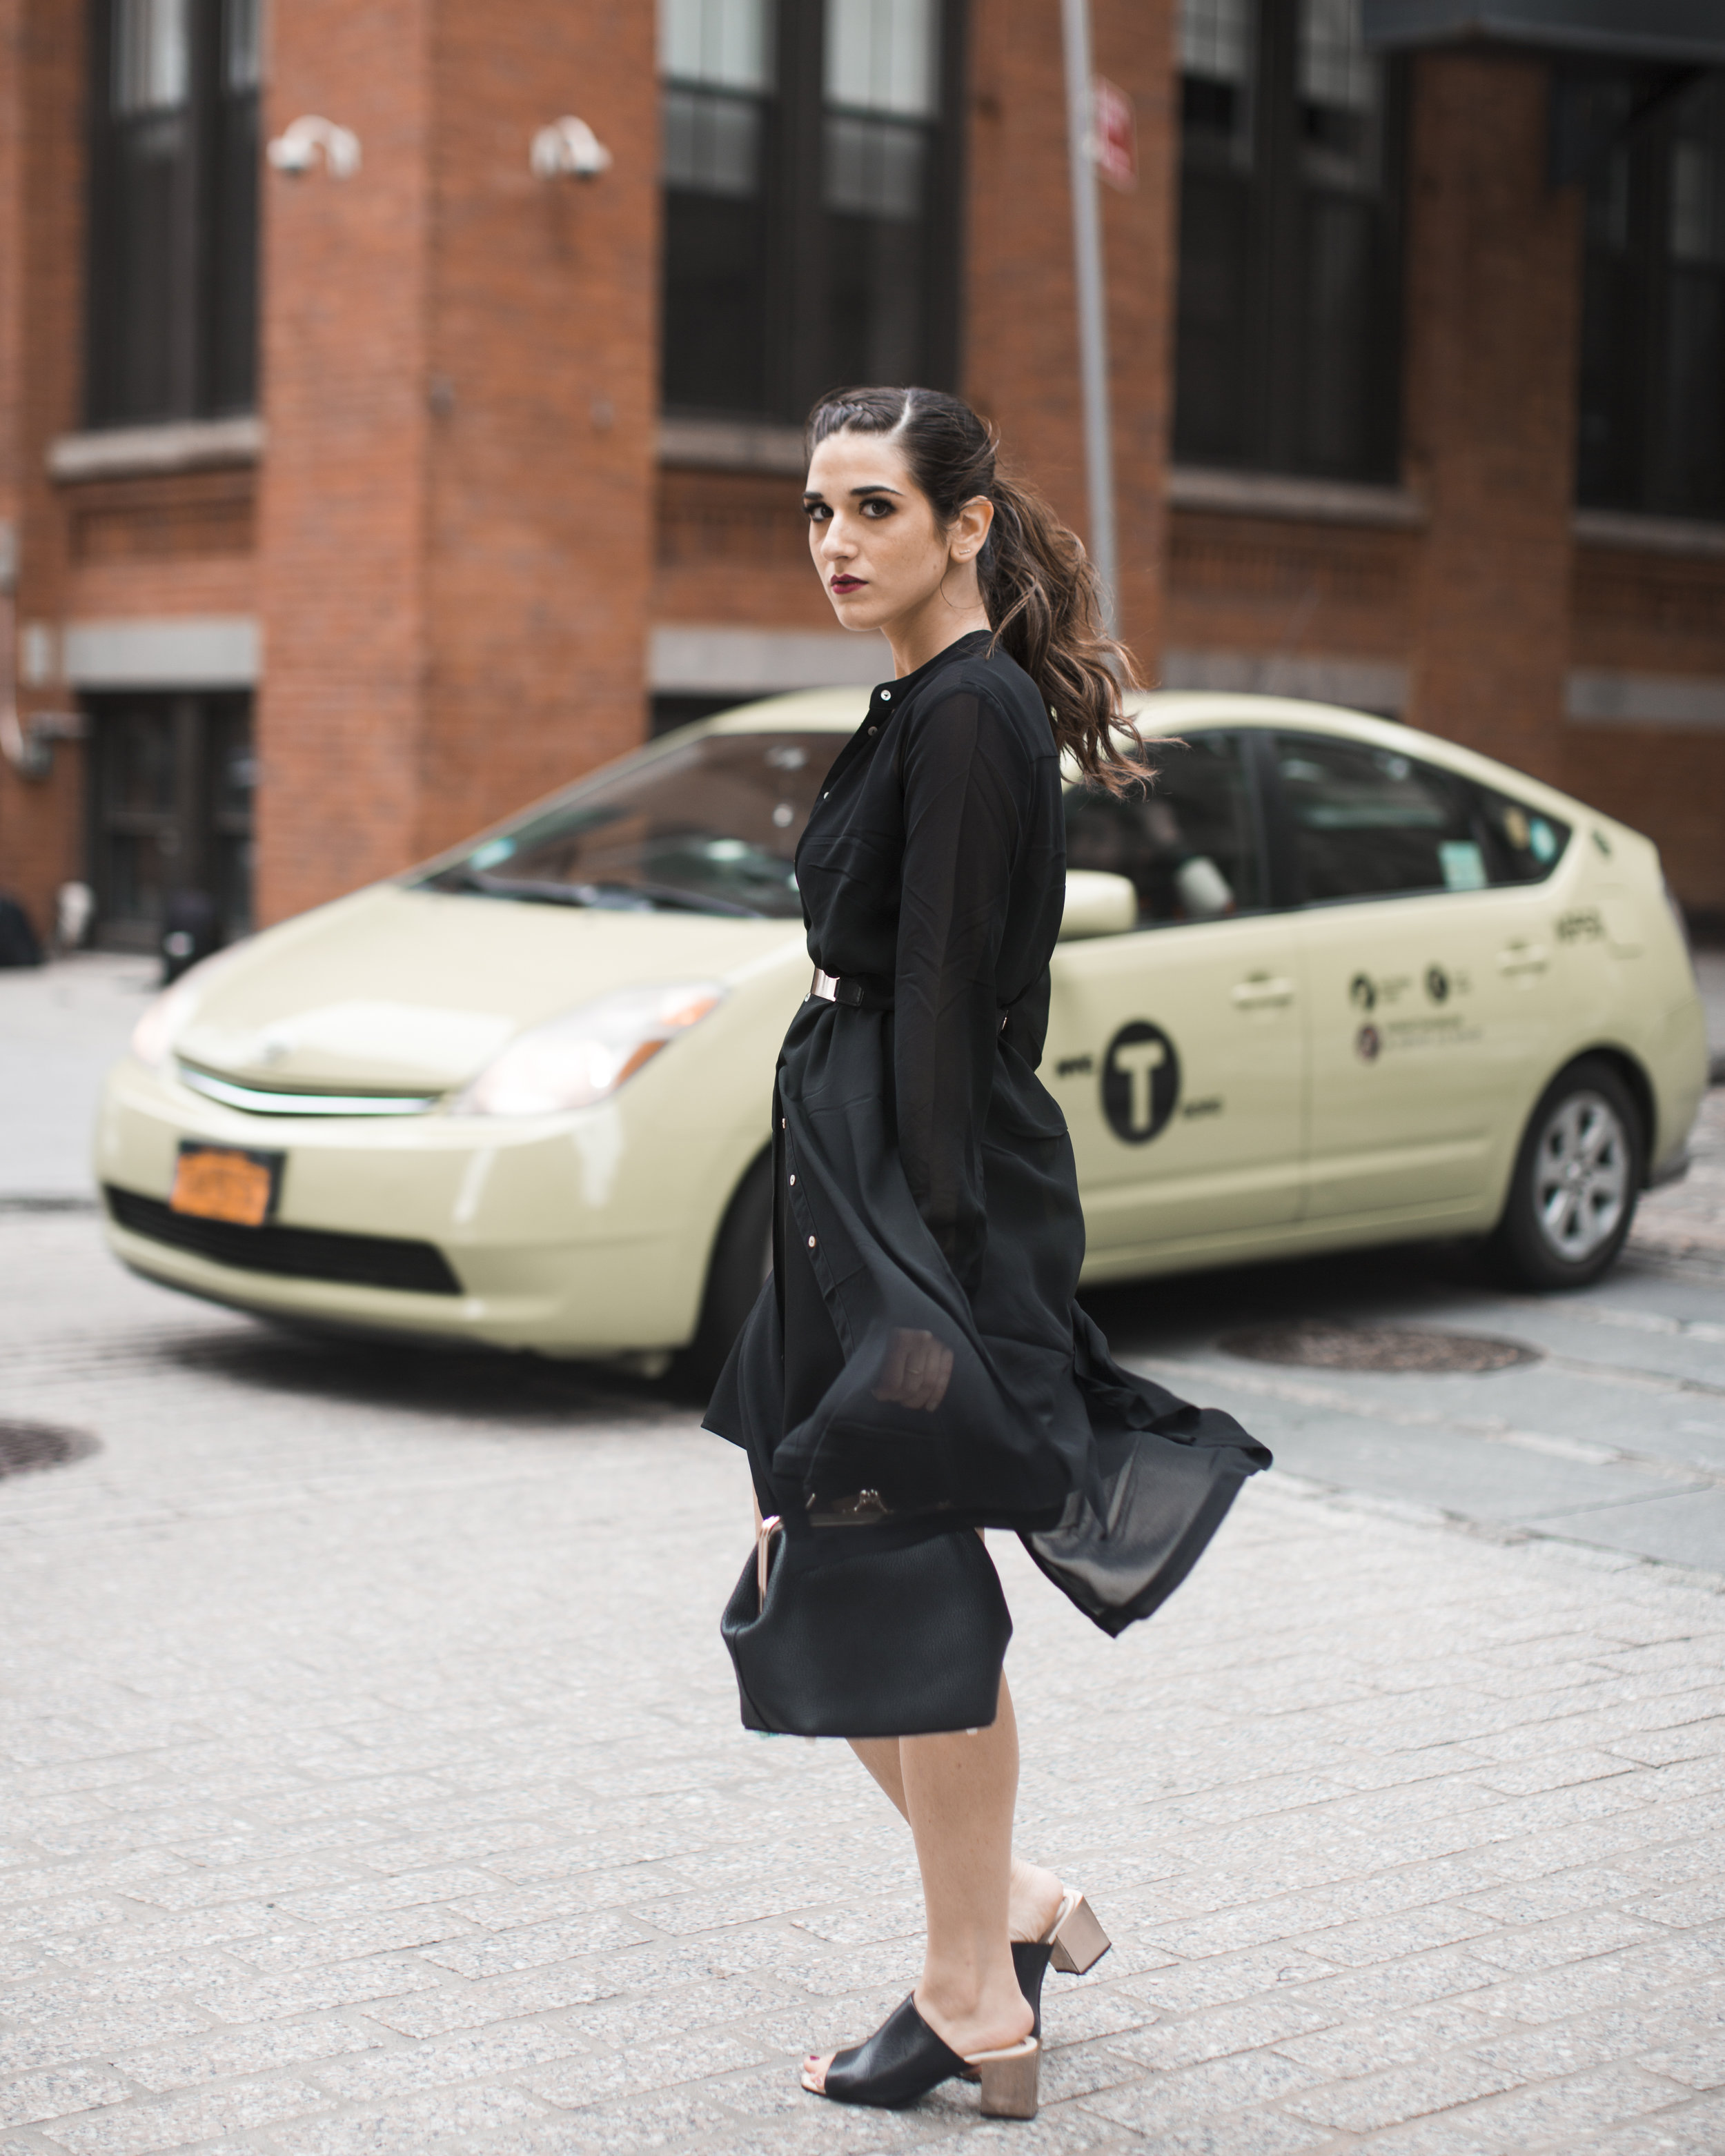 Gold Ribbon Pendant Leibish and Co. Diamonds Louboutins & Love Fashion Blog Esther Santer NYC Street Style Blogger Monochrome Mules Necklace Braid Hair Girl Women Shirt Dress All Black Red Lipstick Trendy Outfit Jewelry Inspo OOTD Bag Wear Inspo Shop.jpg